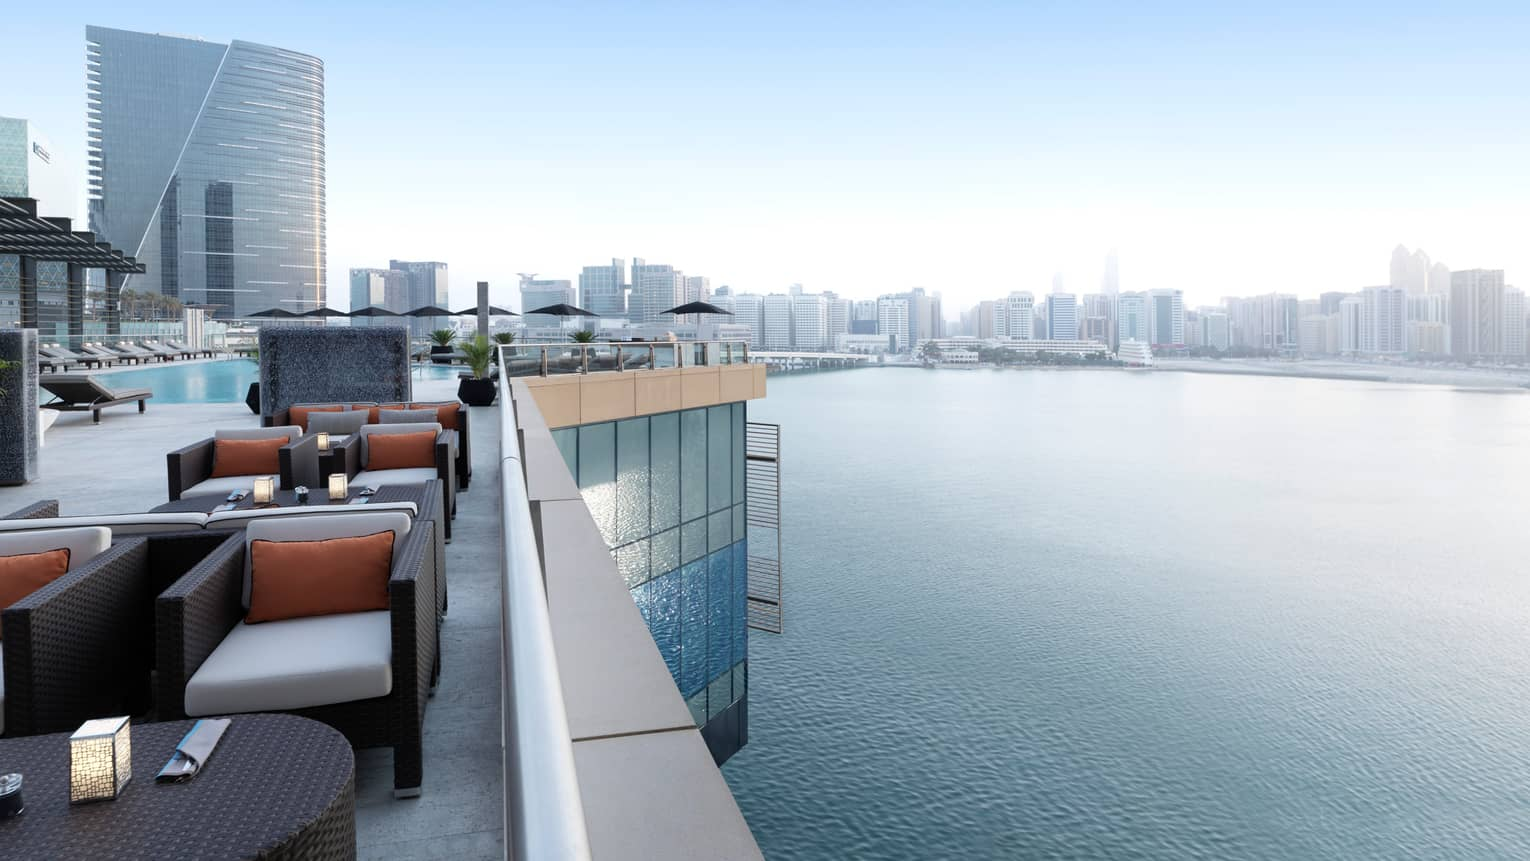 Rooftop lounge with stylish black wicker armchairs, cushions, candles on tables, swimming pool, overlooking Arabian Gulf